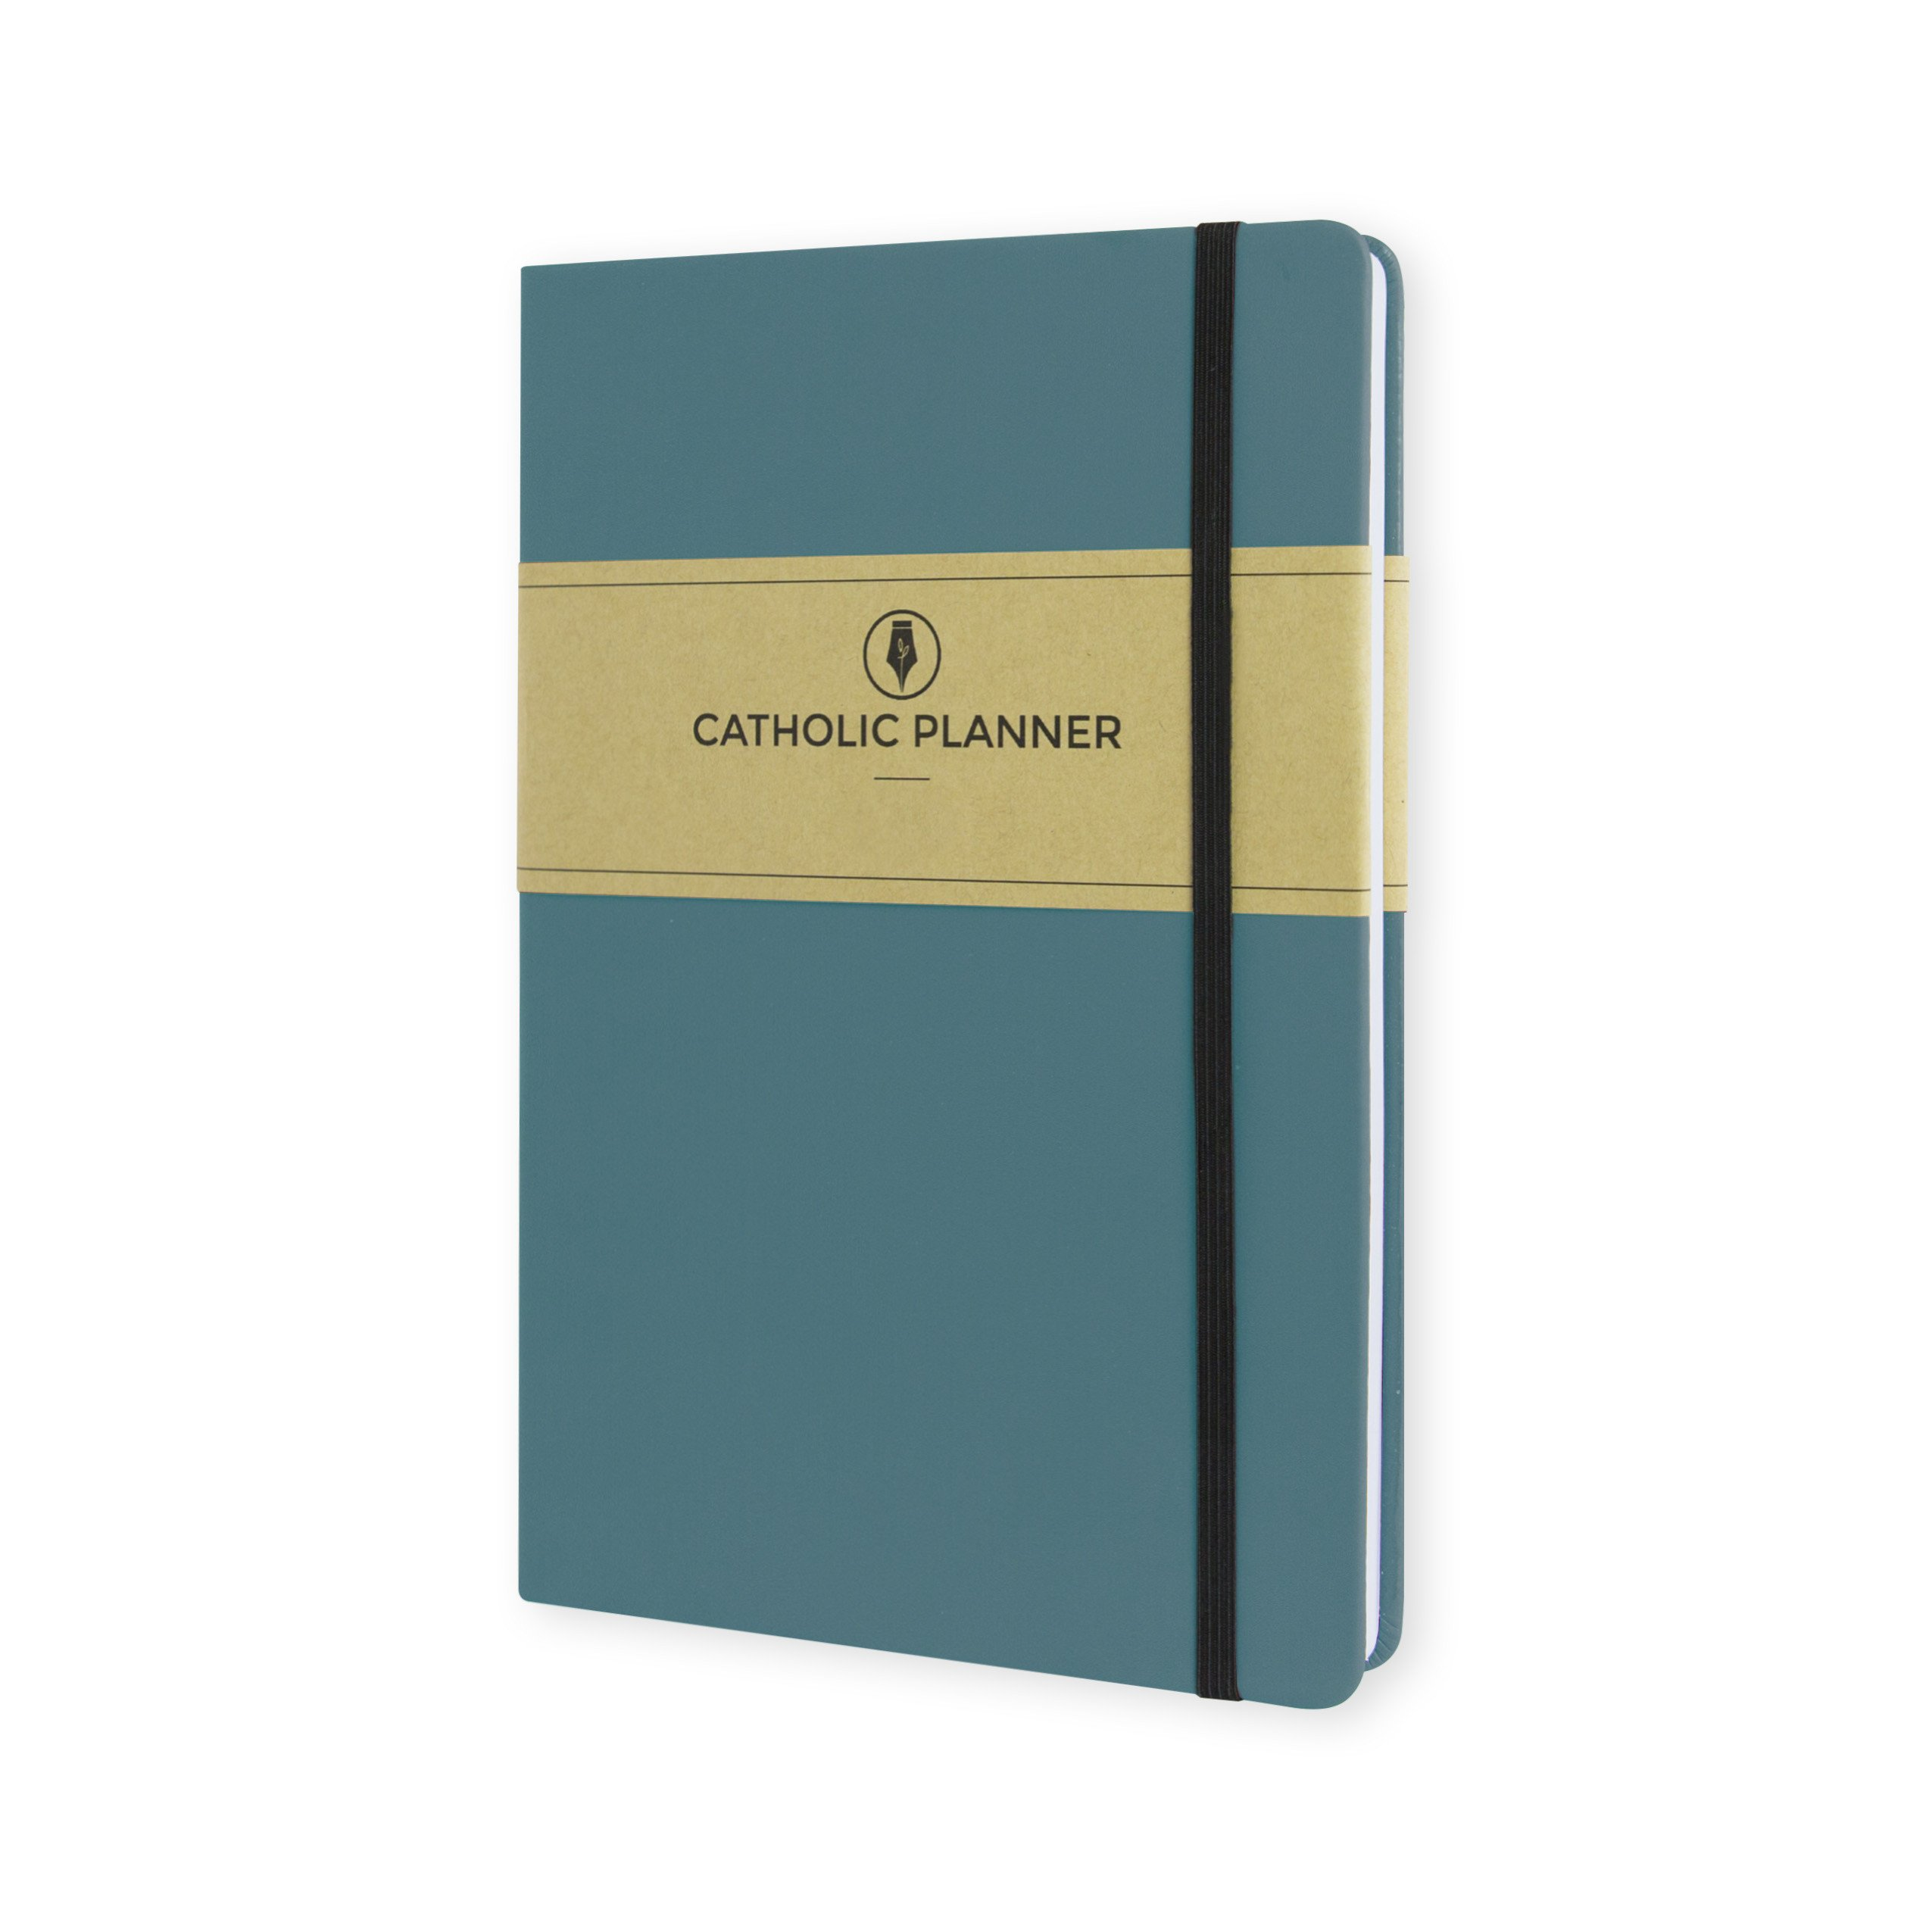 2018 Catholic Planner Compact